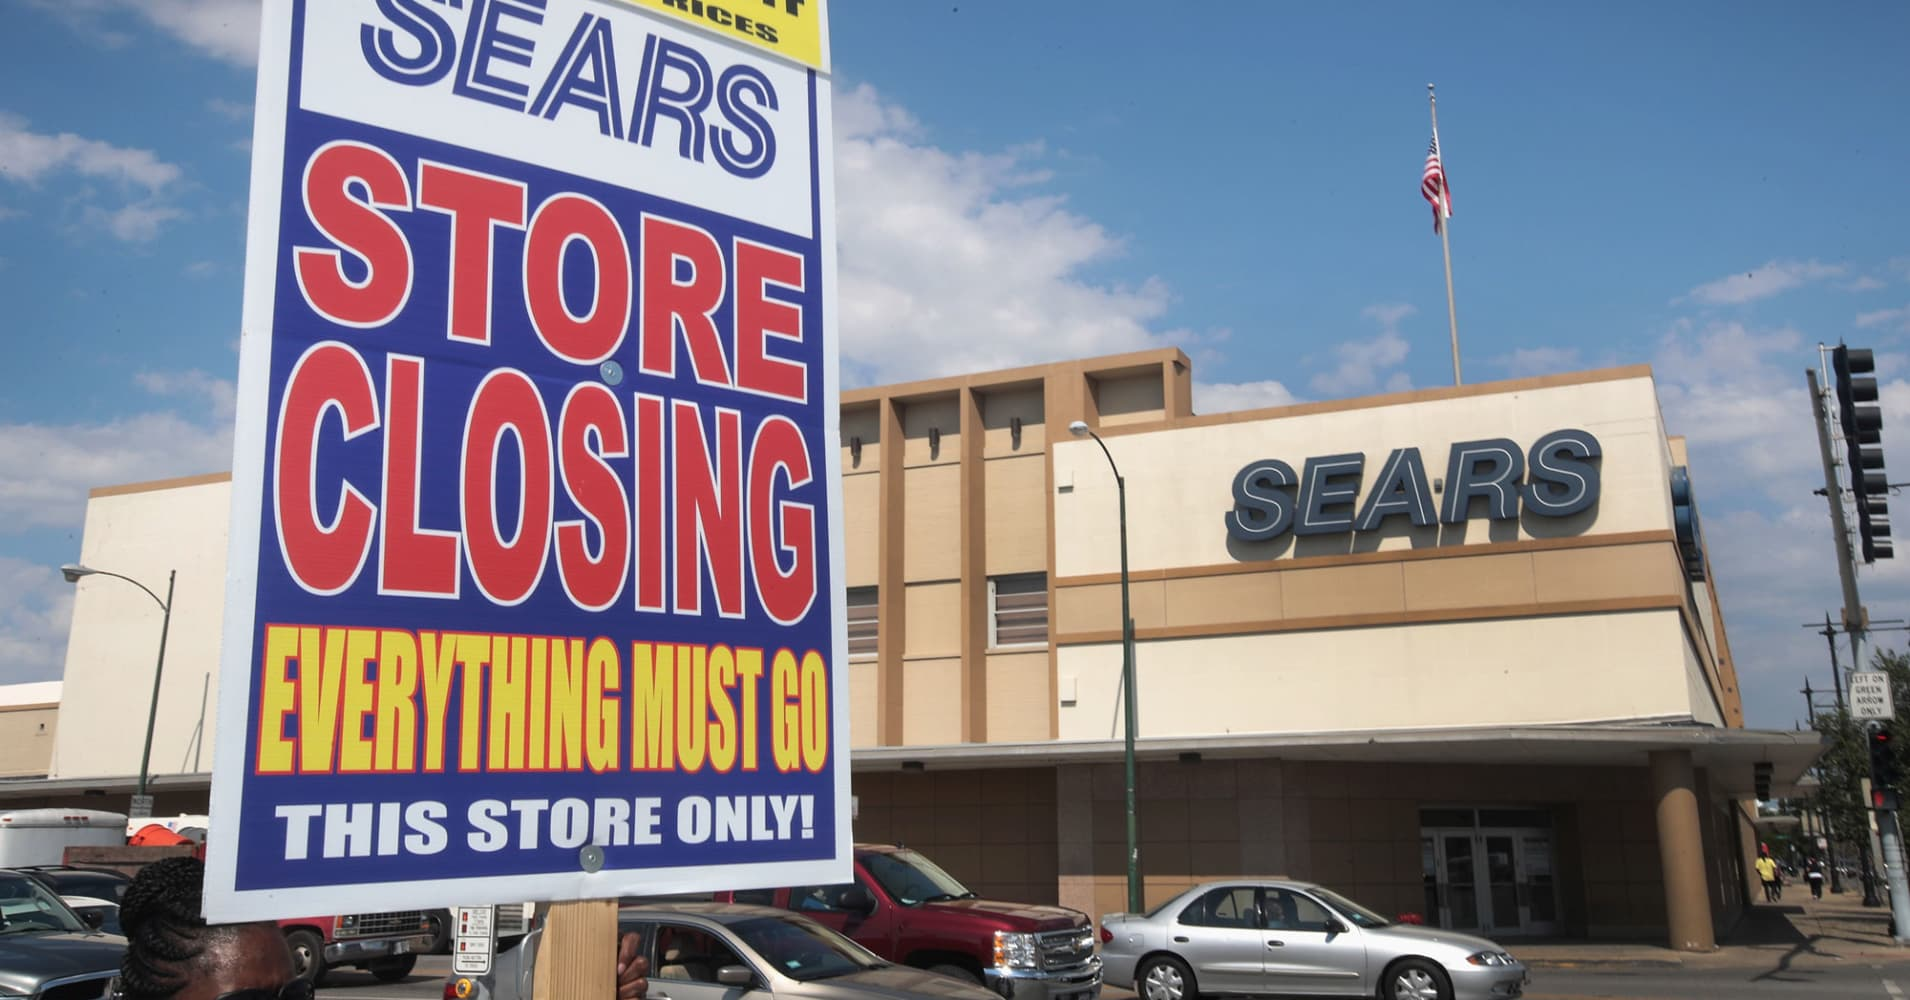 A worker holds a sign announcing a store-closing sale outside the 60-year-old Sears store in the Galewood neighborhood on July 7, 2017 in Chicago.